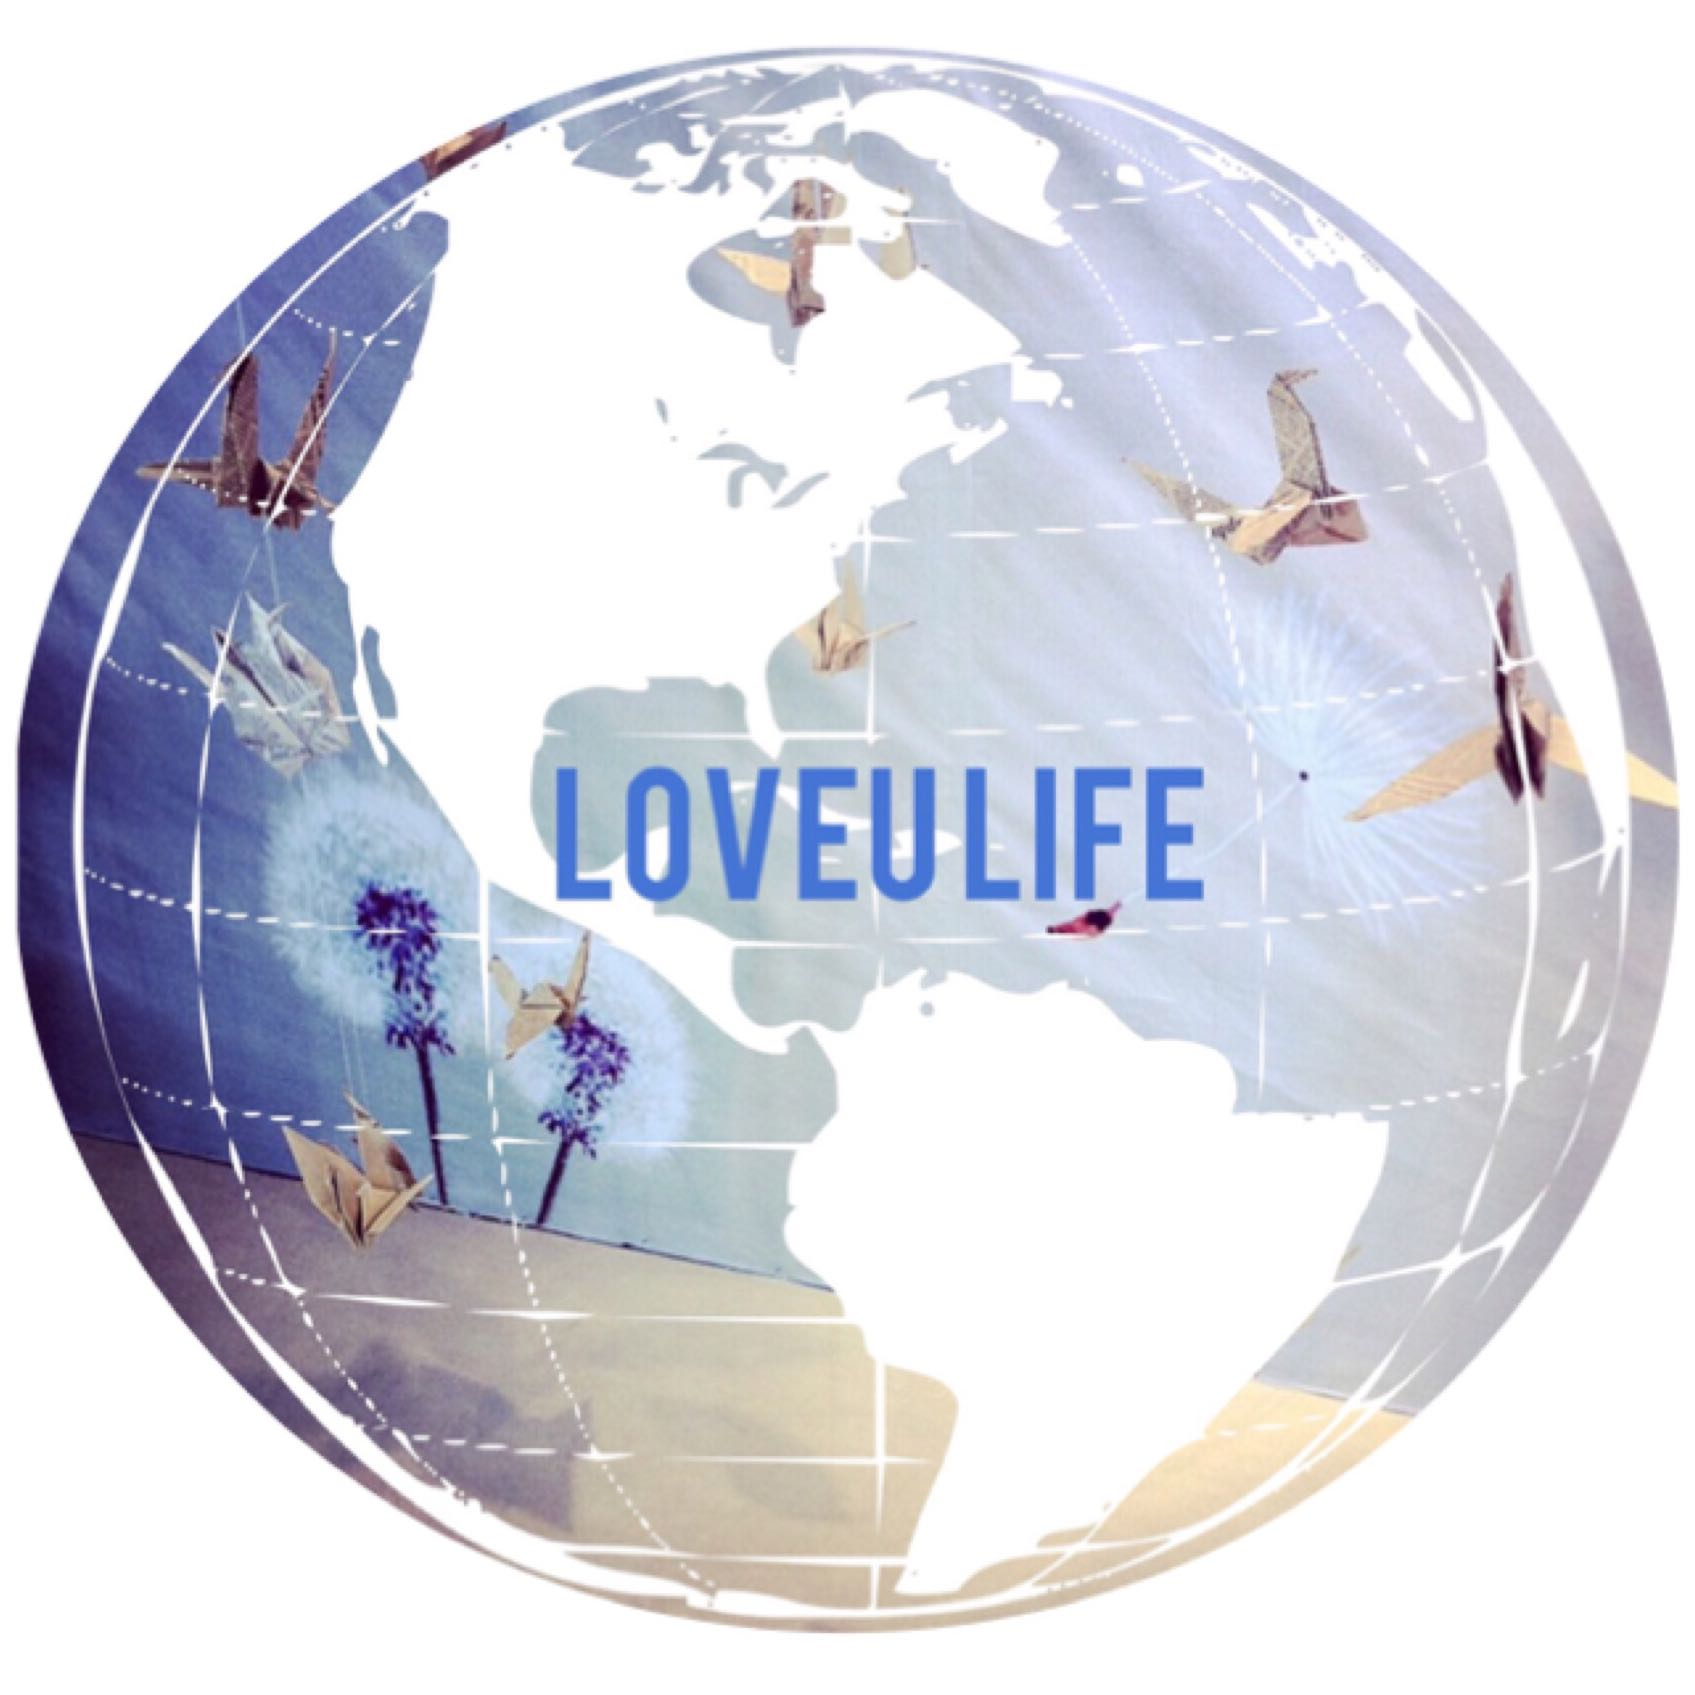 loveulife